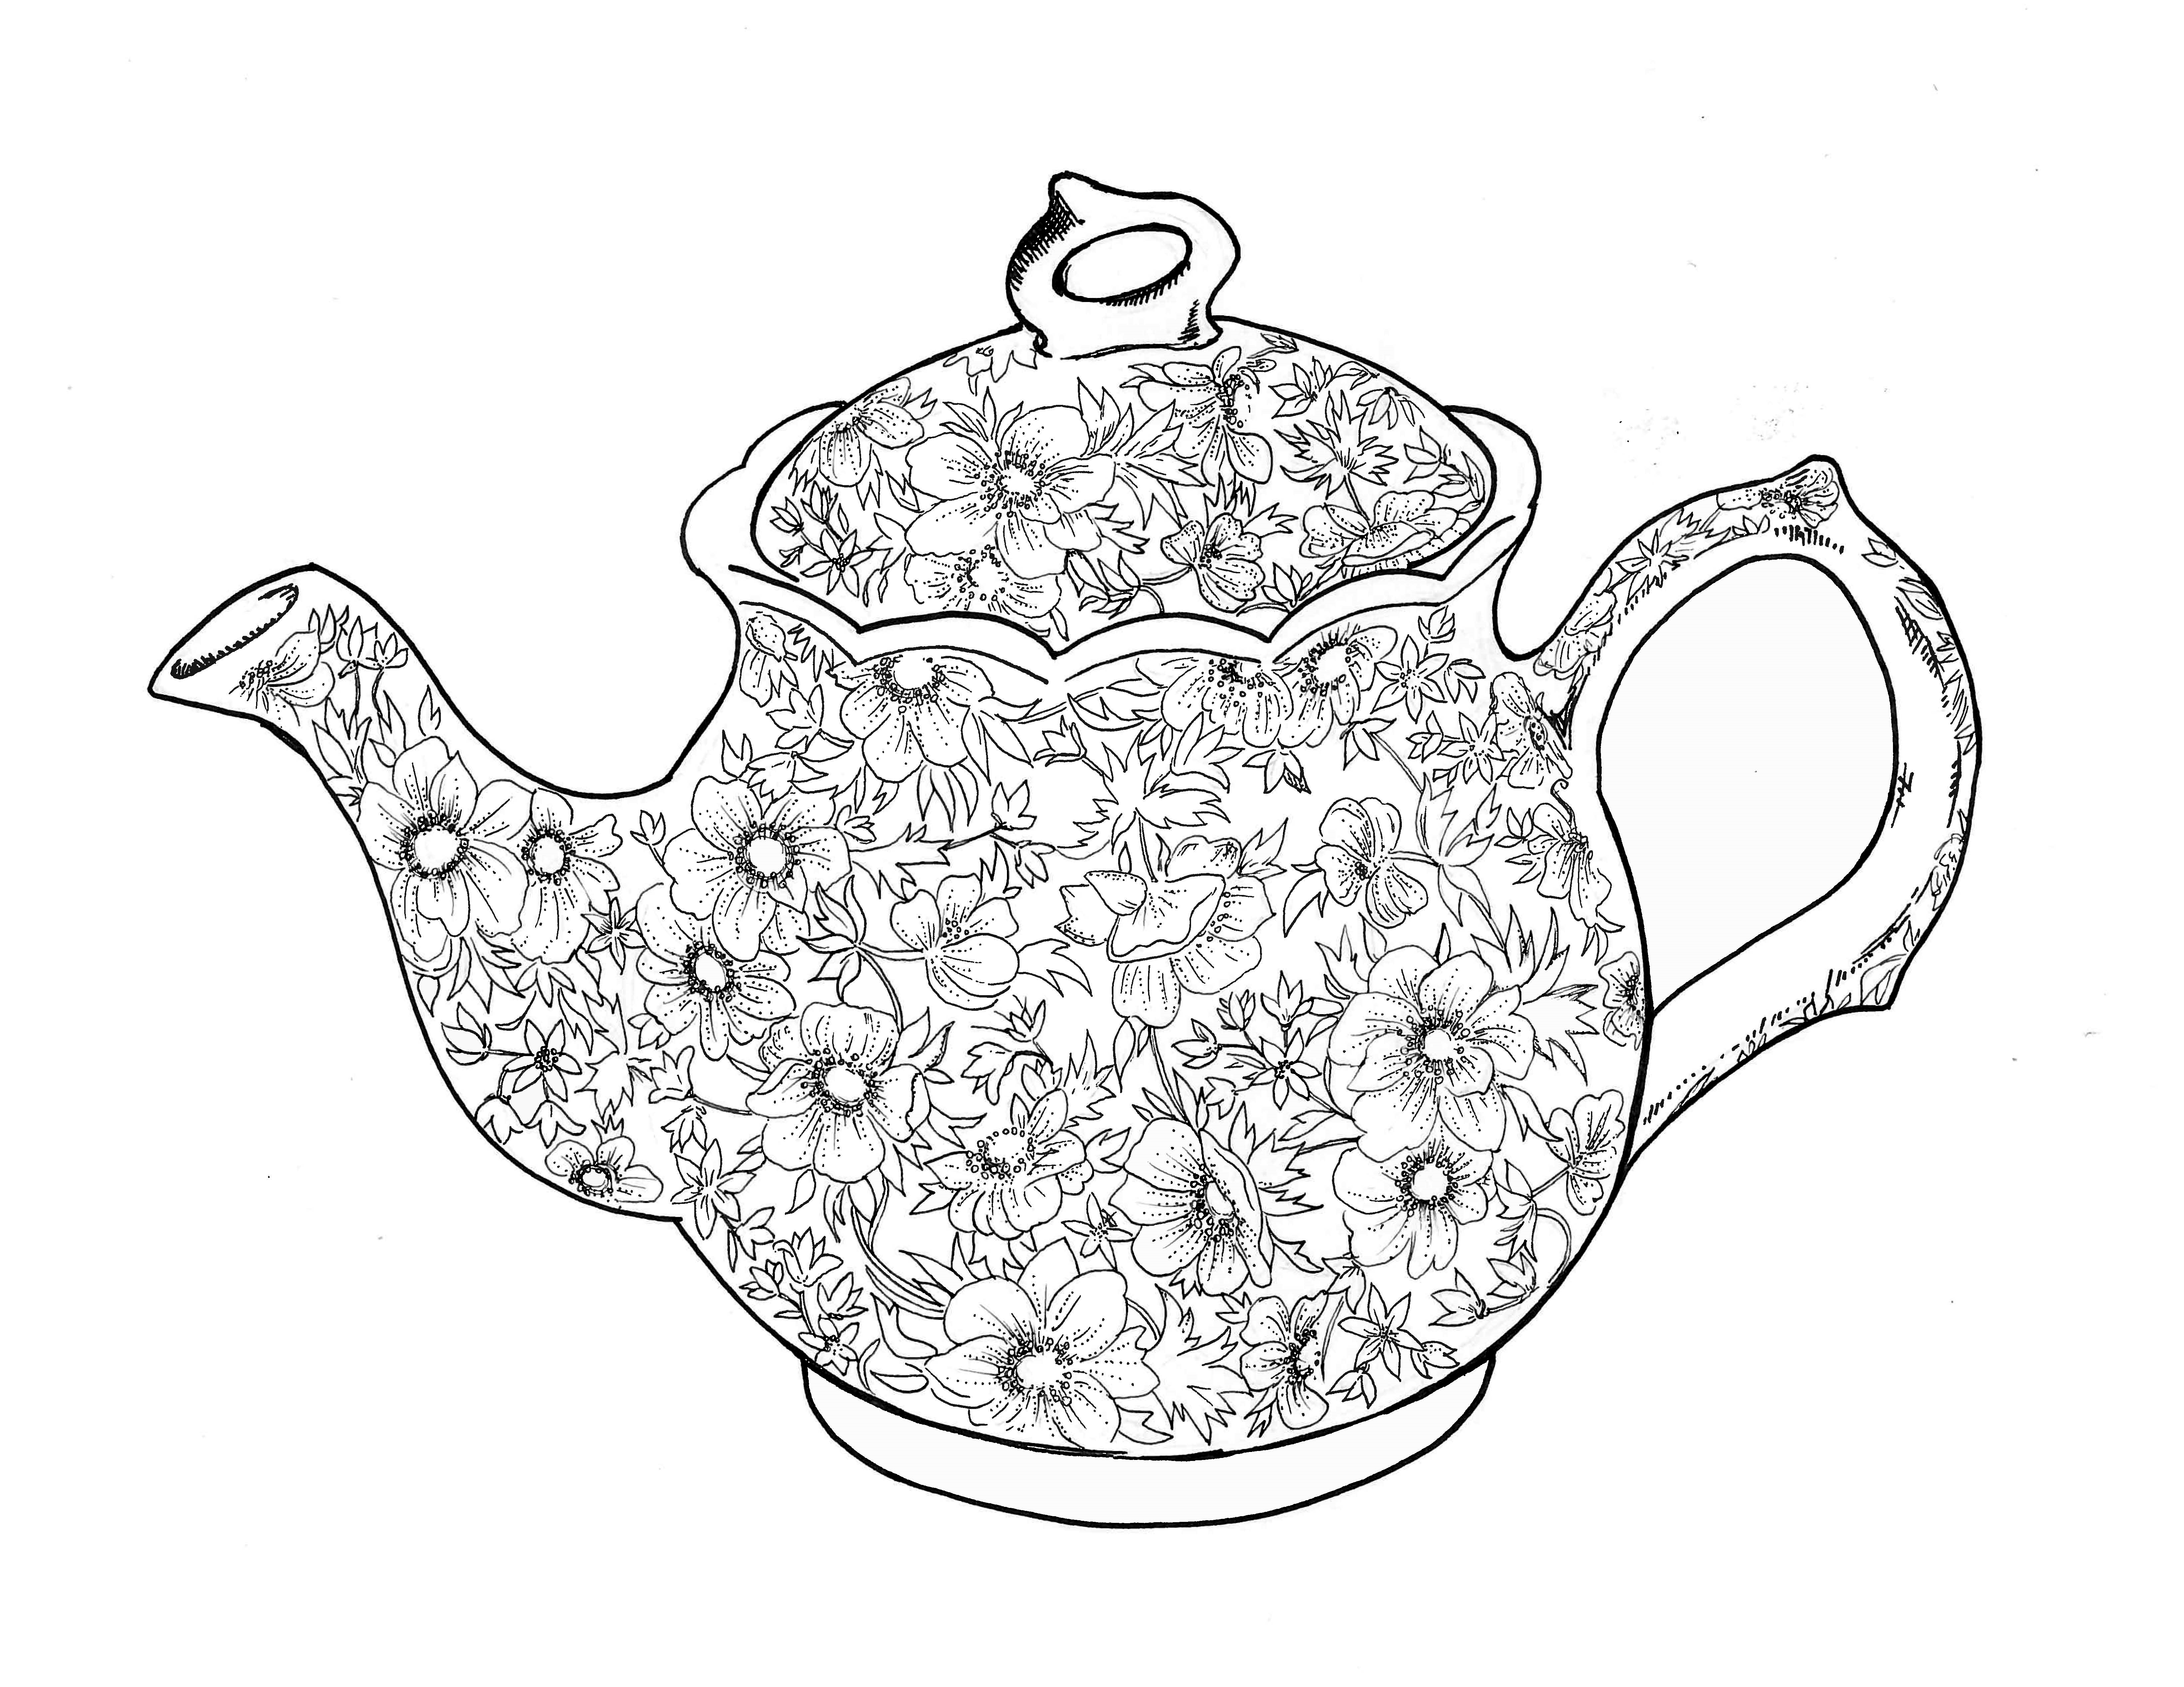 Teapot Coloring Page Free Teapot Coloring Book Download Free Clip Art Free Clip Art On